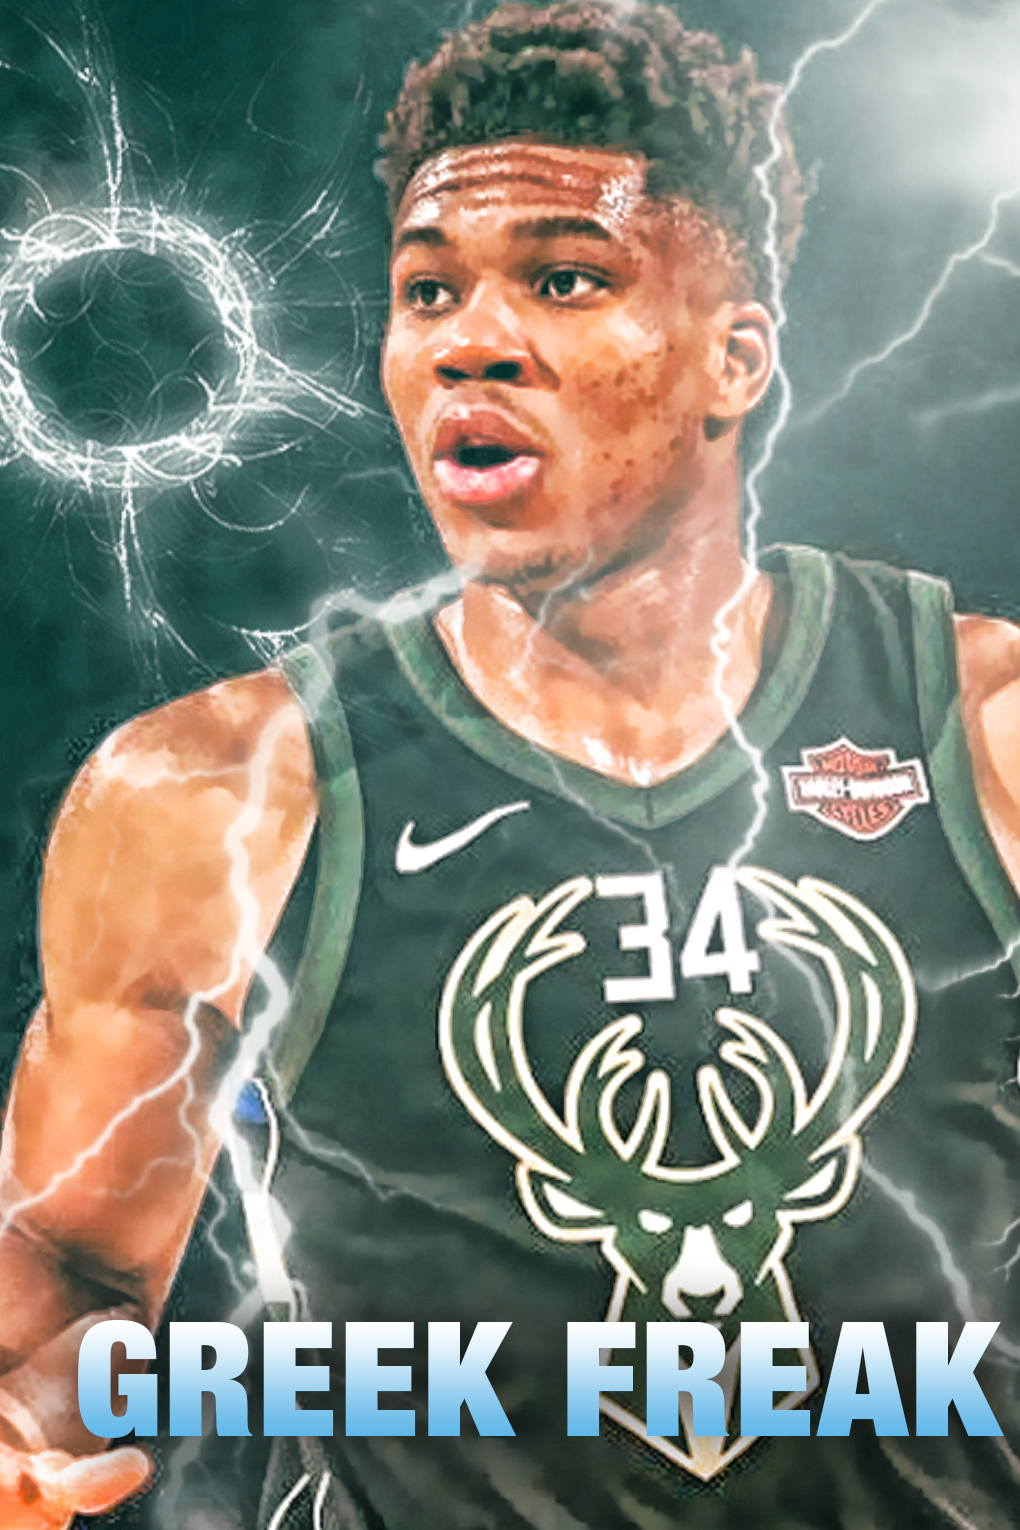 Giannis Antetokounmpo Cool 3199076 Hd Wallpaper Backgrounds Download